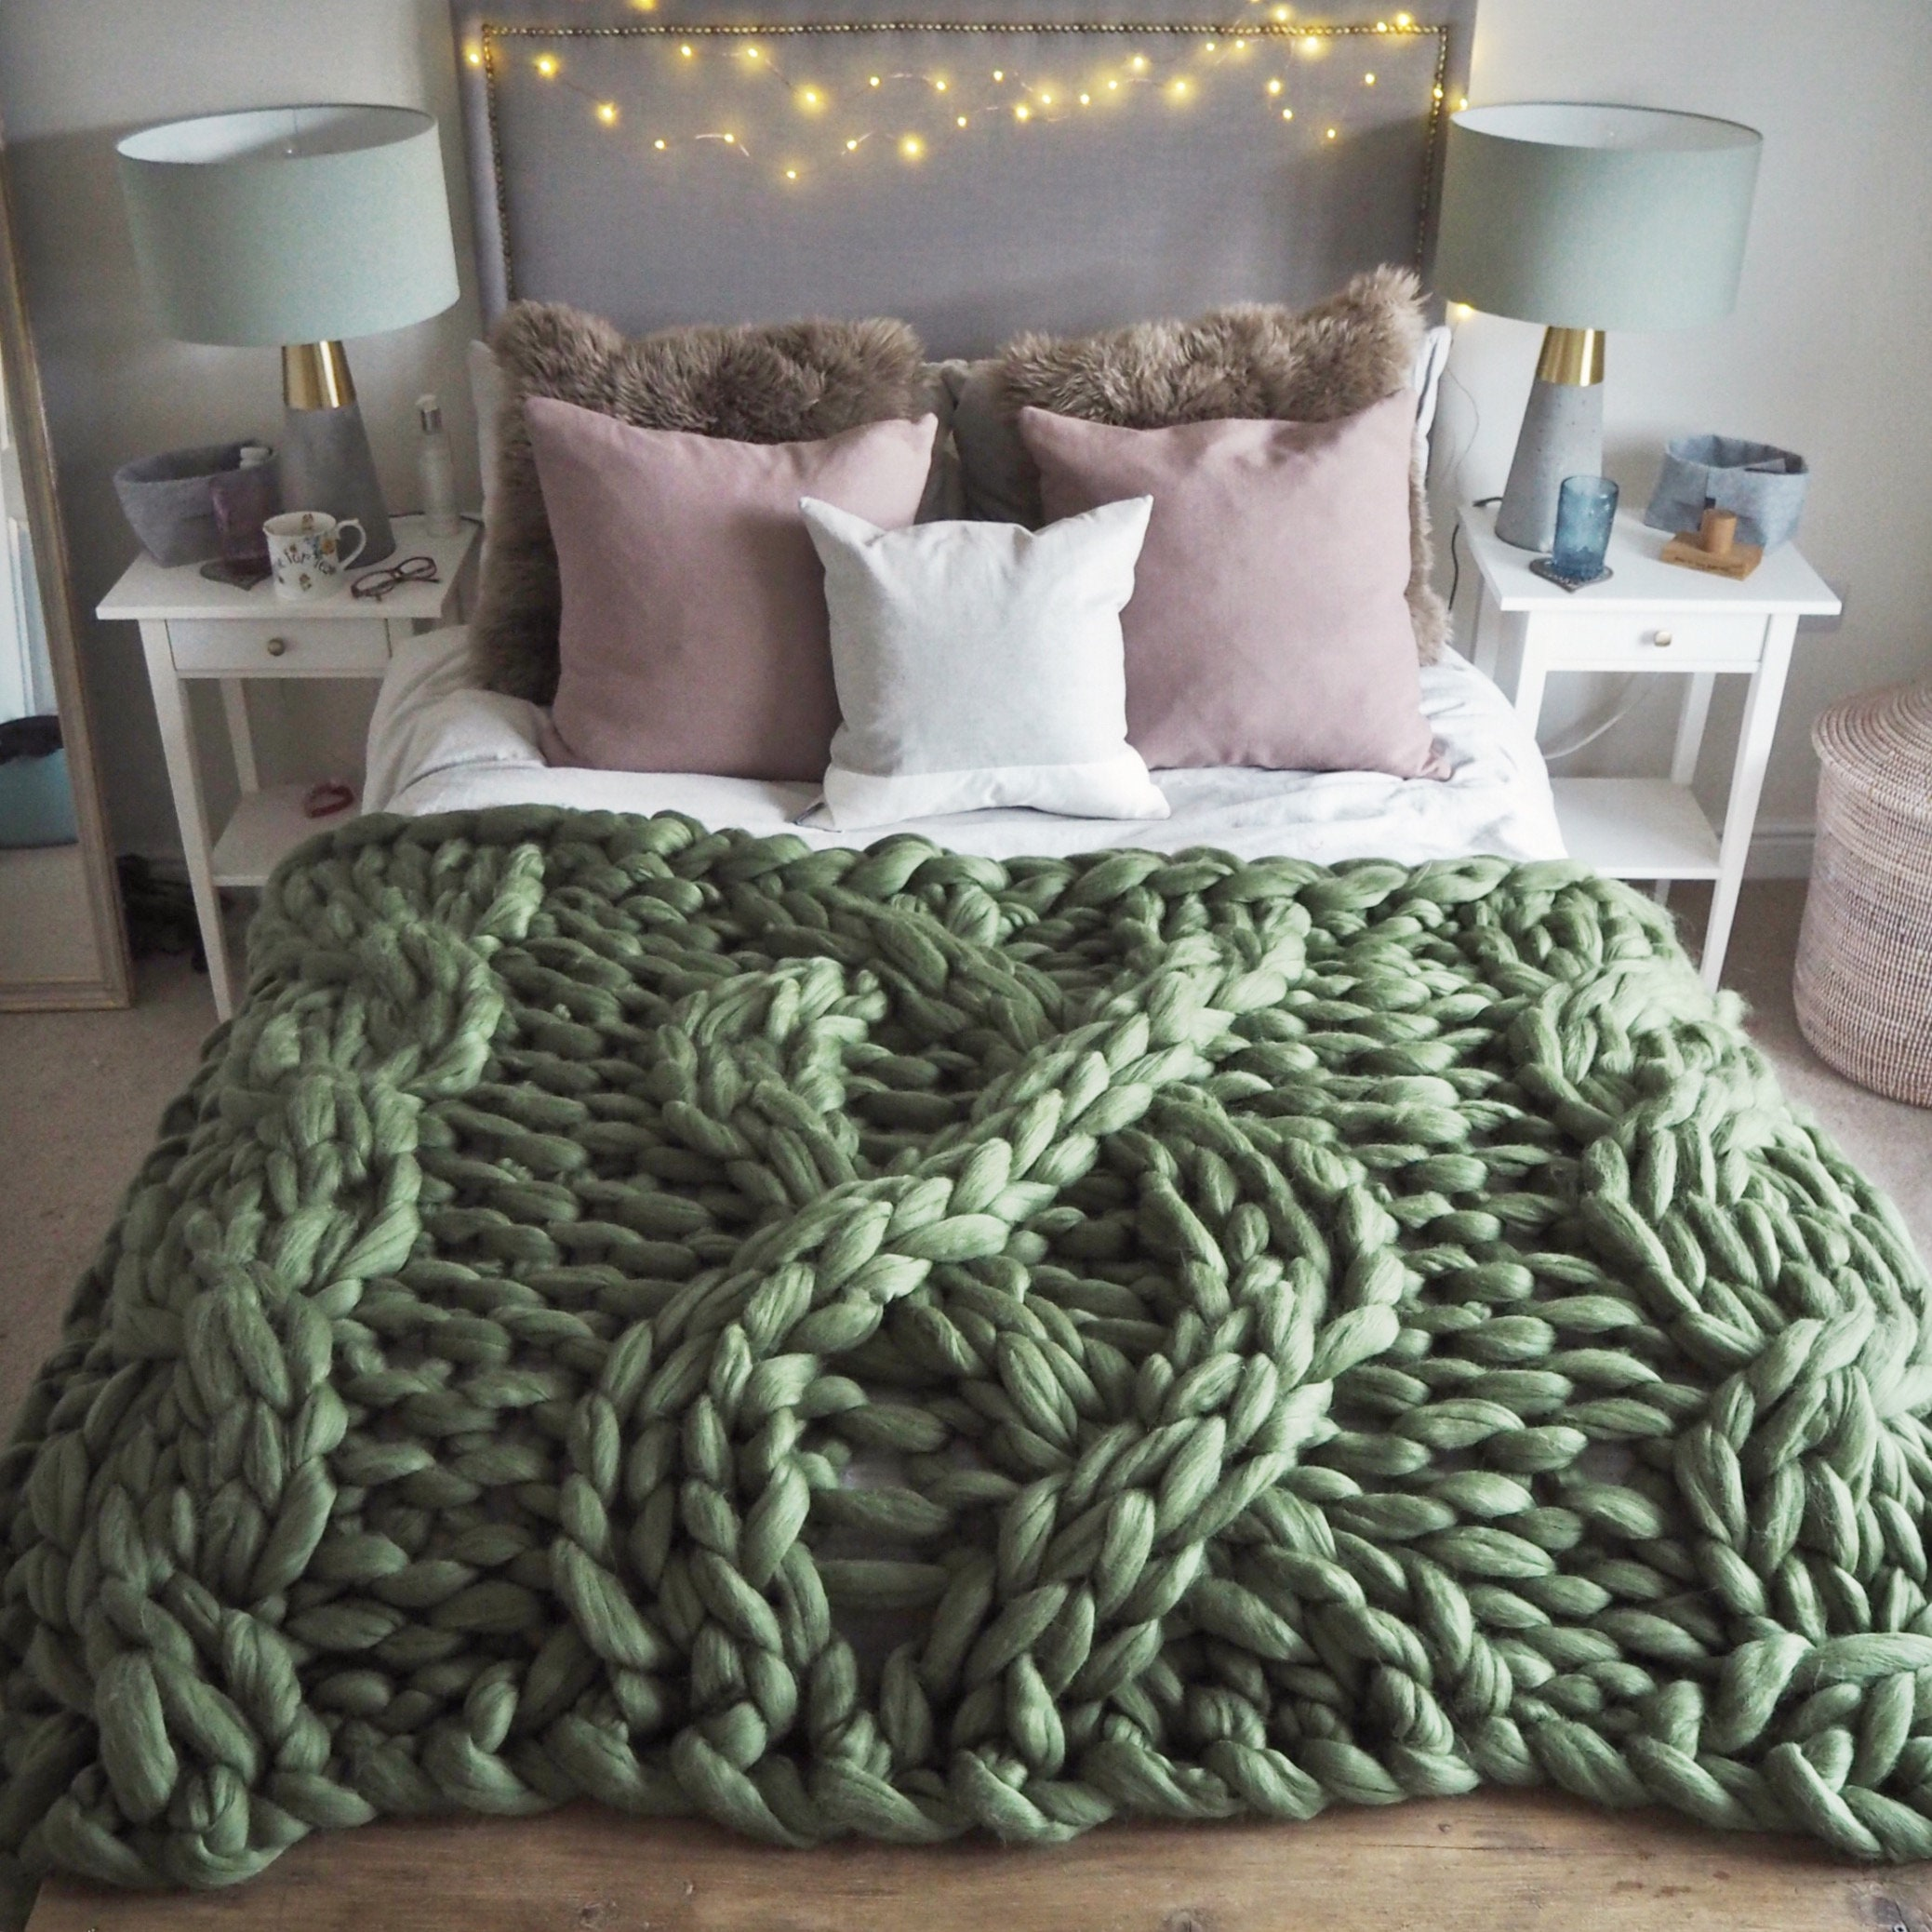 zoom Giant Cable Knit Blanket Chunky Knit